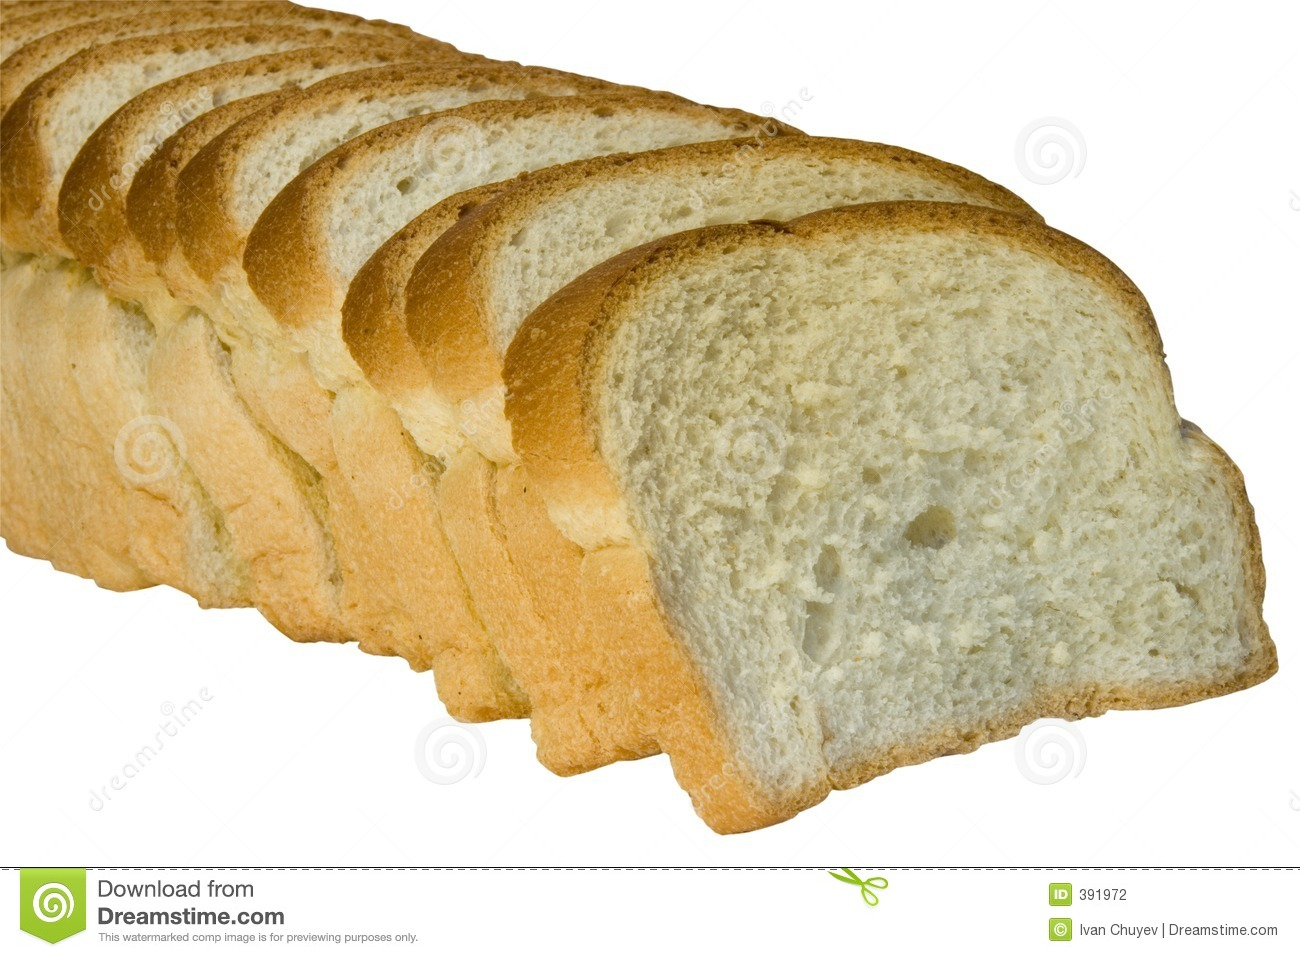 Slices of bread isolated on white background with clipping path.